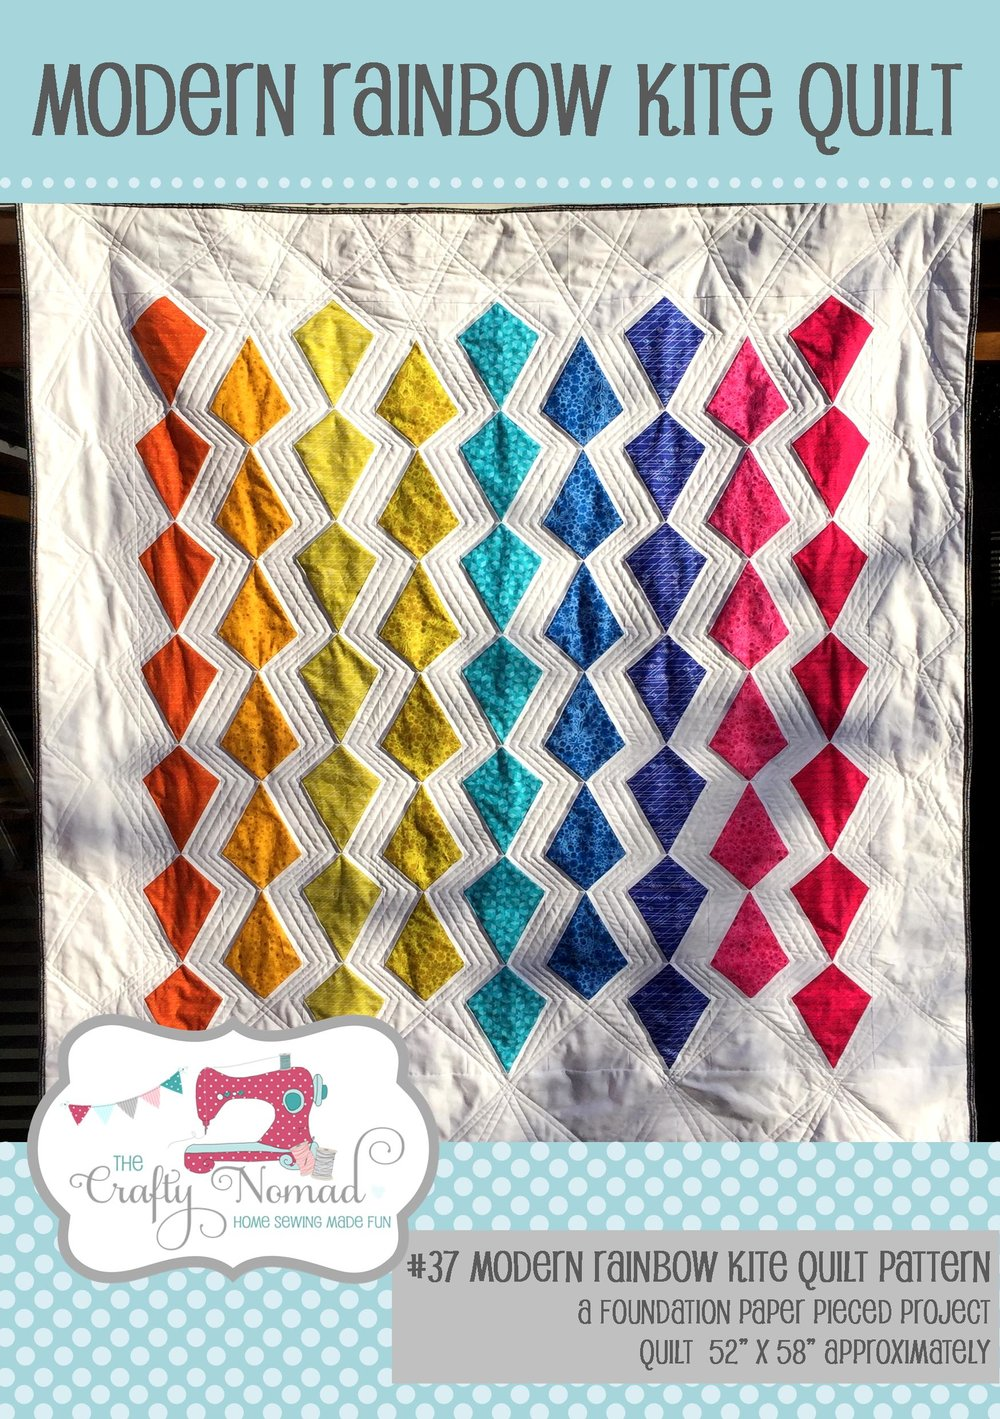 Modern Rainbow Kites Quilt Pattern The Crafty Nomad